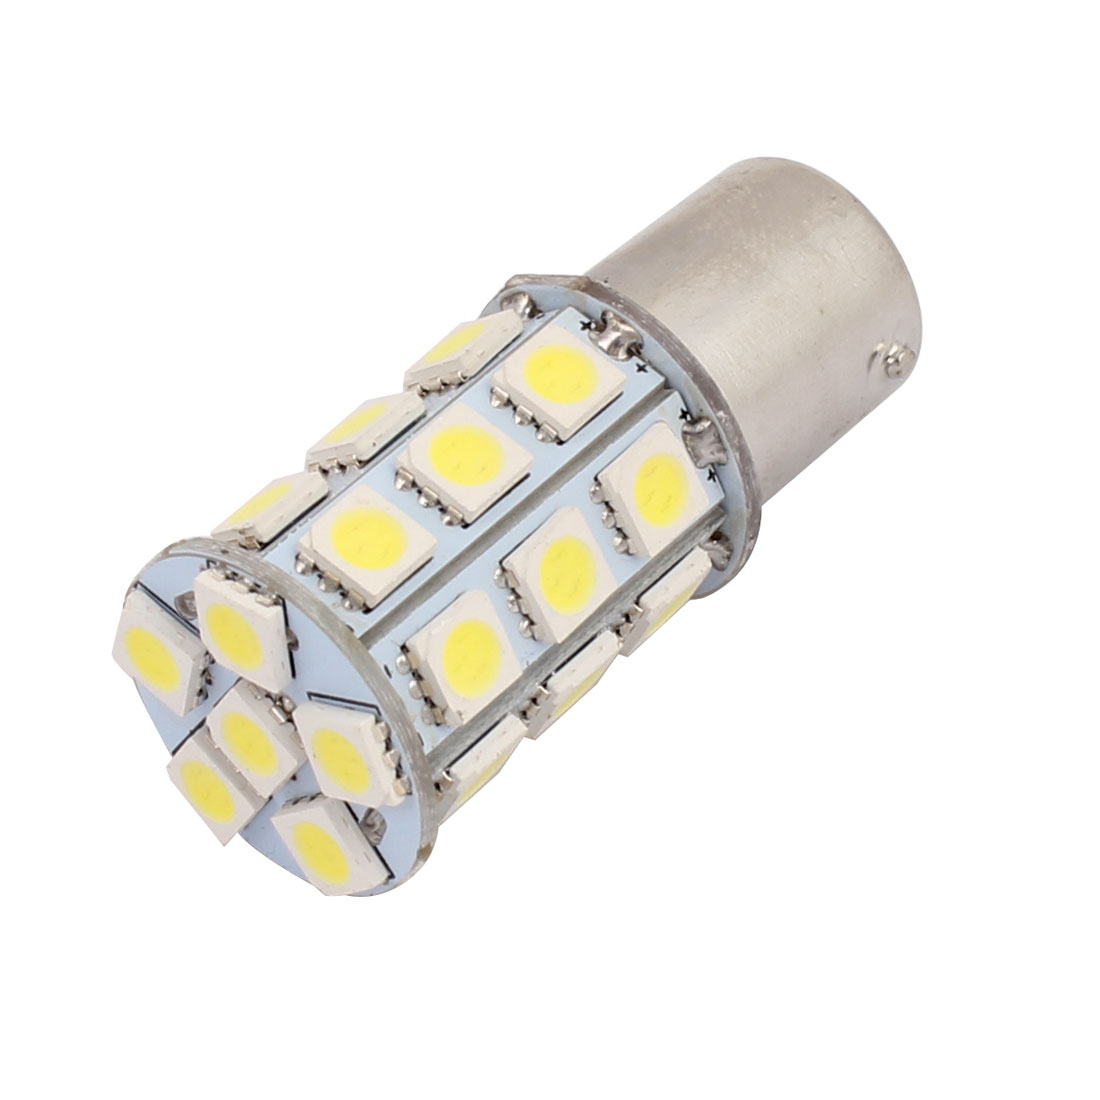 DC 12V 1157 White 27LEDs Lights Bulbs for Light Lamps Replacement